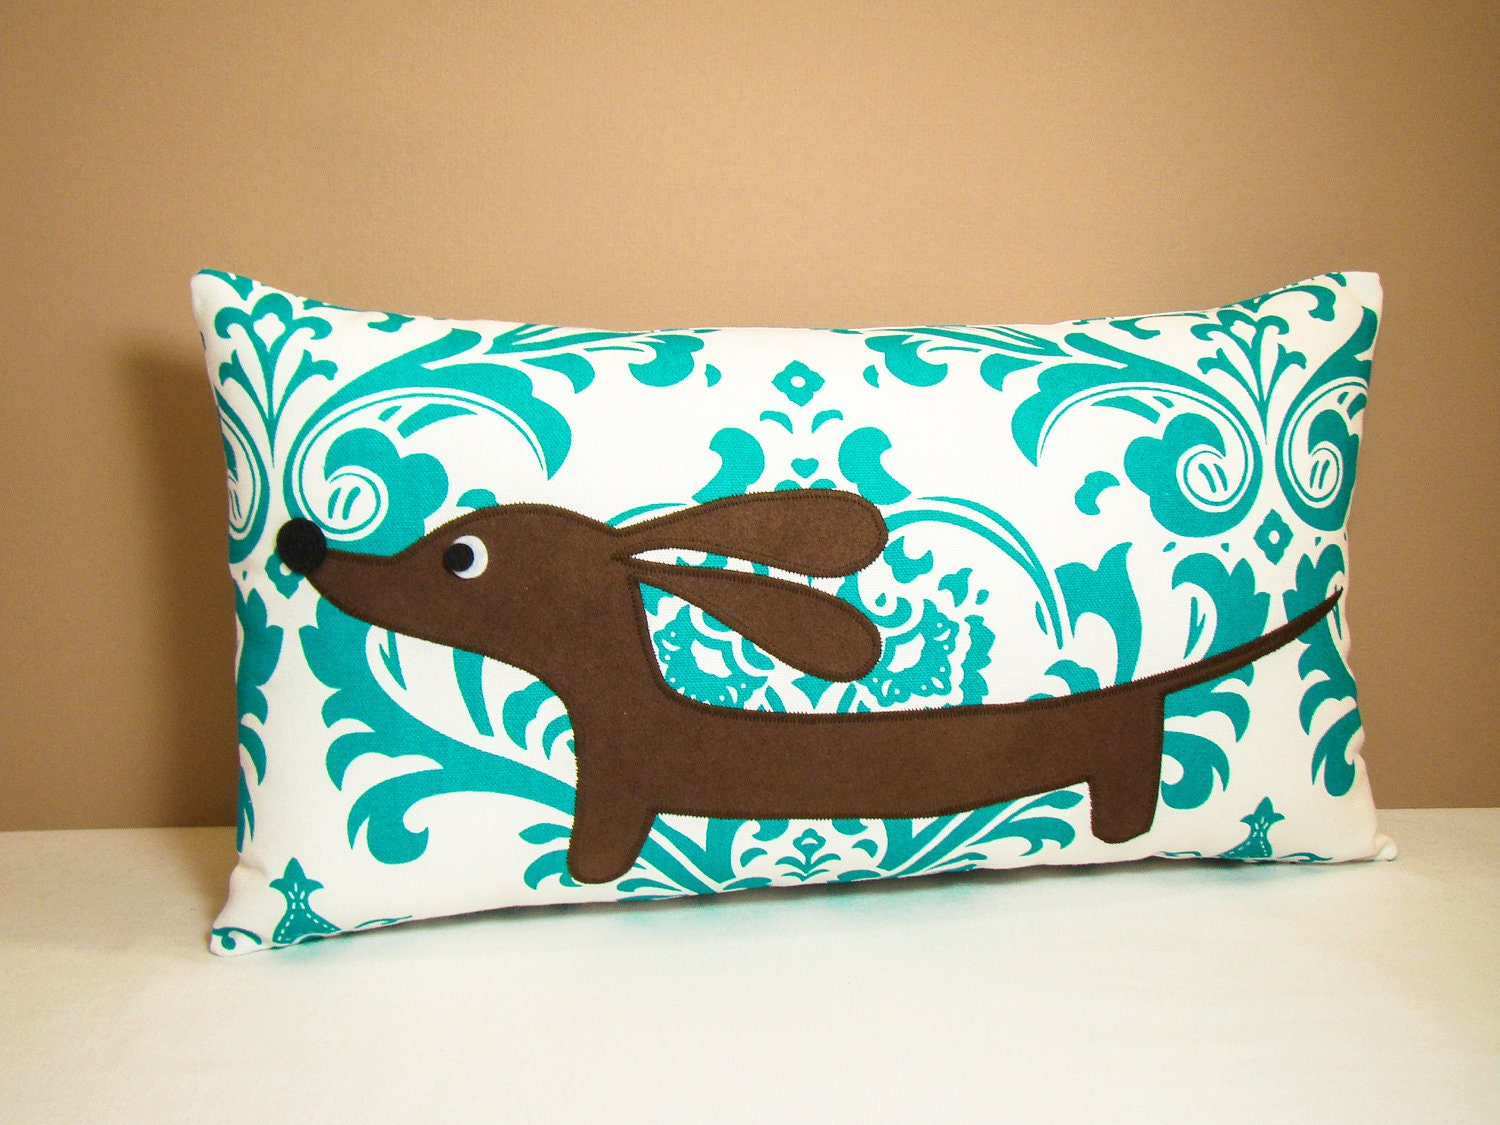 Dachshund Home Decor Dachshund Pillow Doxie In The Teal Damask Garden